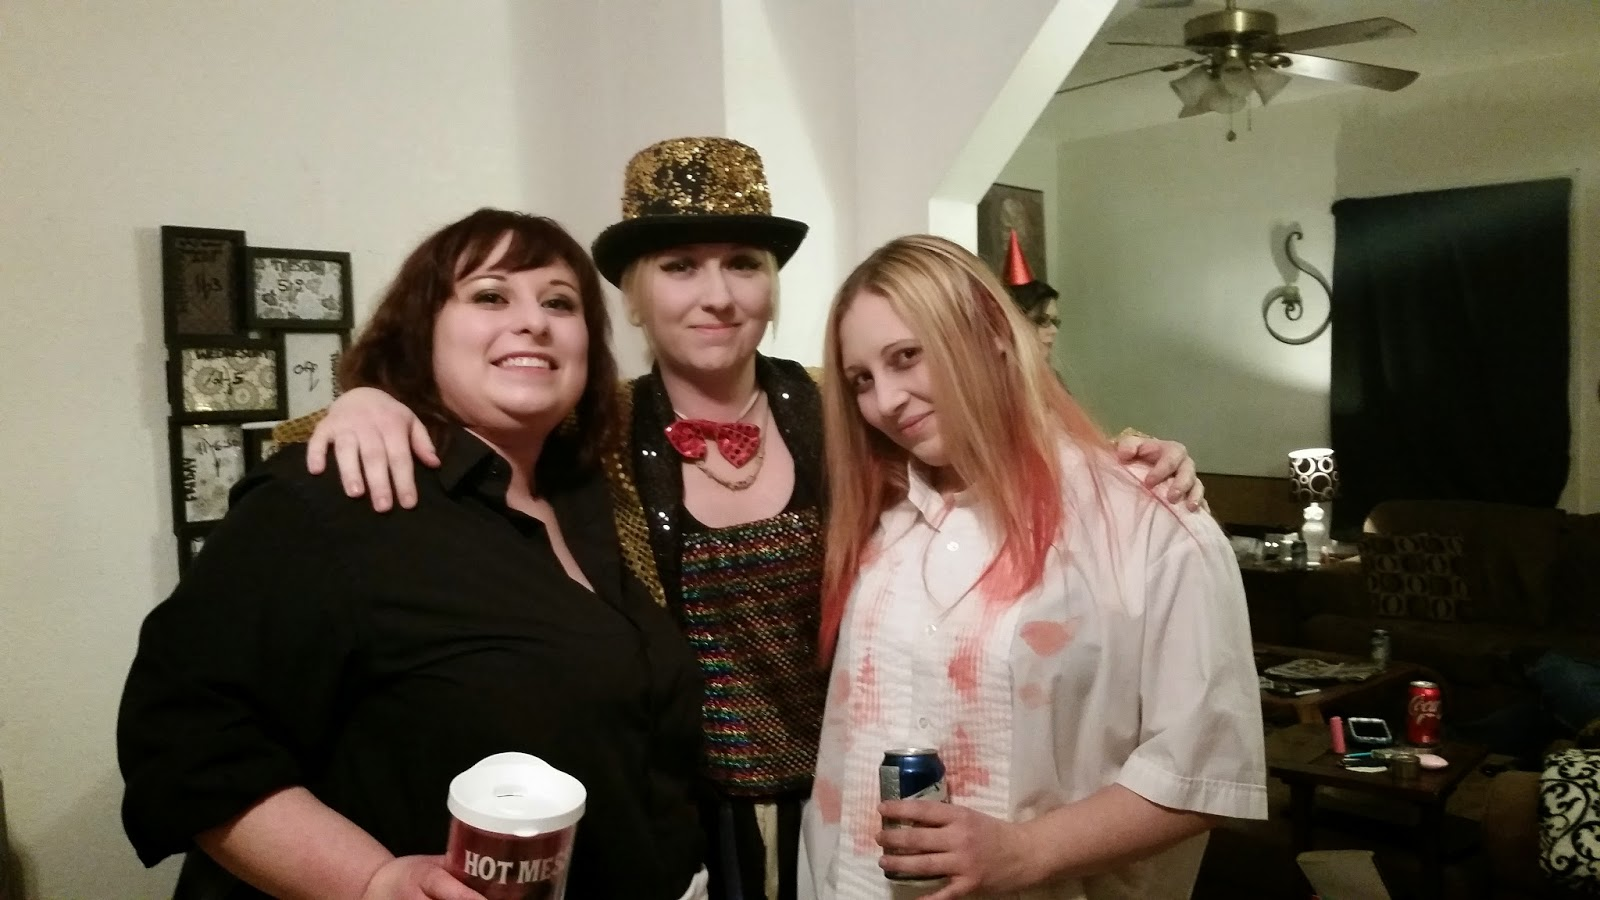 Costume pictures, rocky horror themed birthday